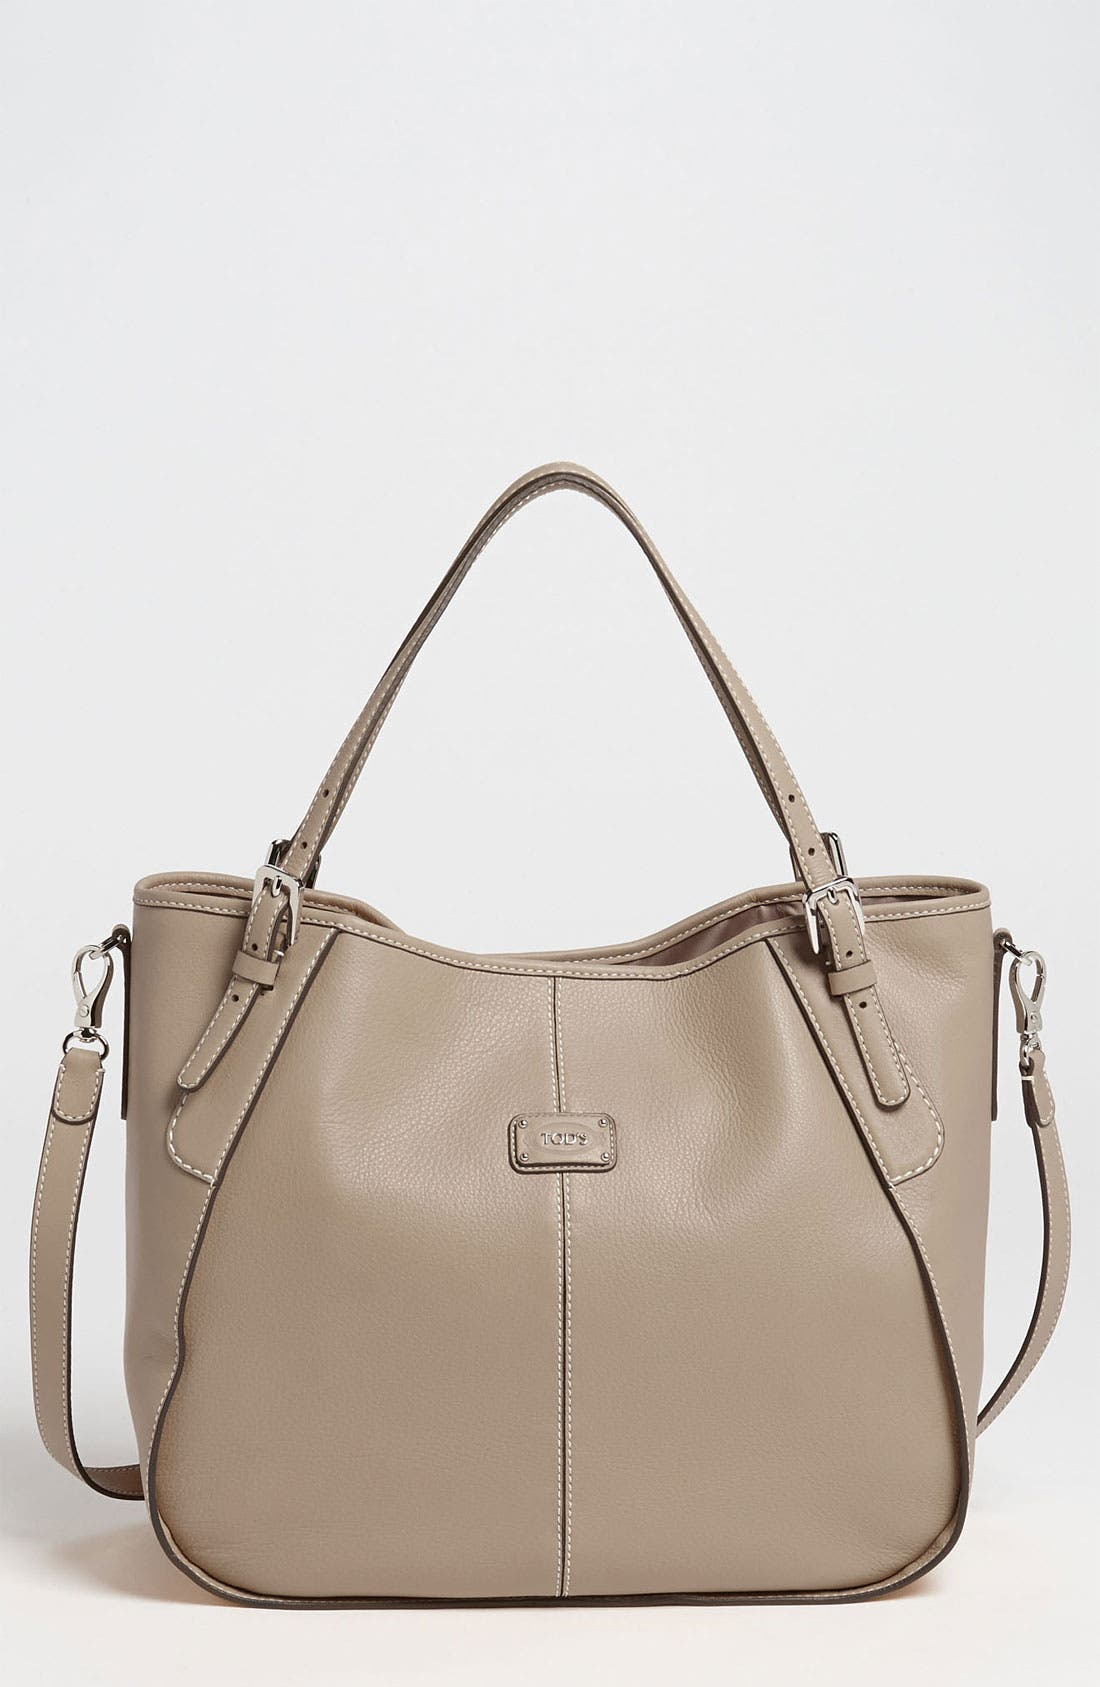 Alternate Image 1 Selected - Tod's 'New G - Medium' Leather Shoulder Bag